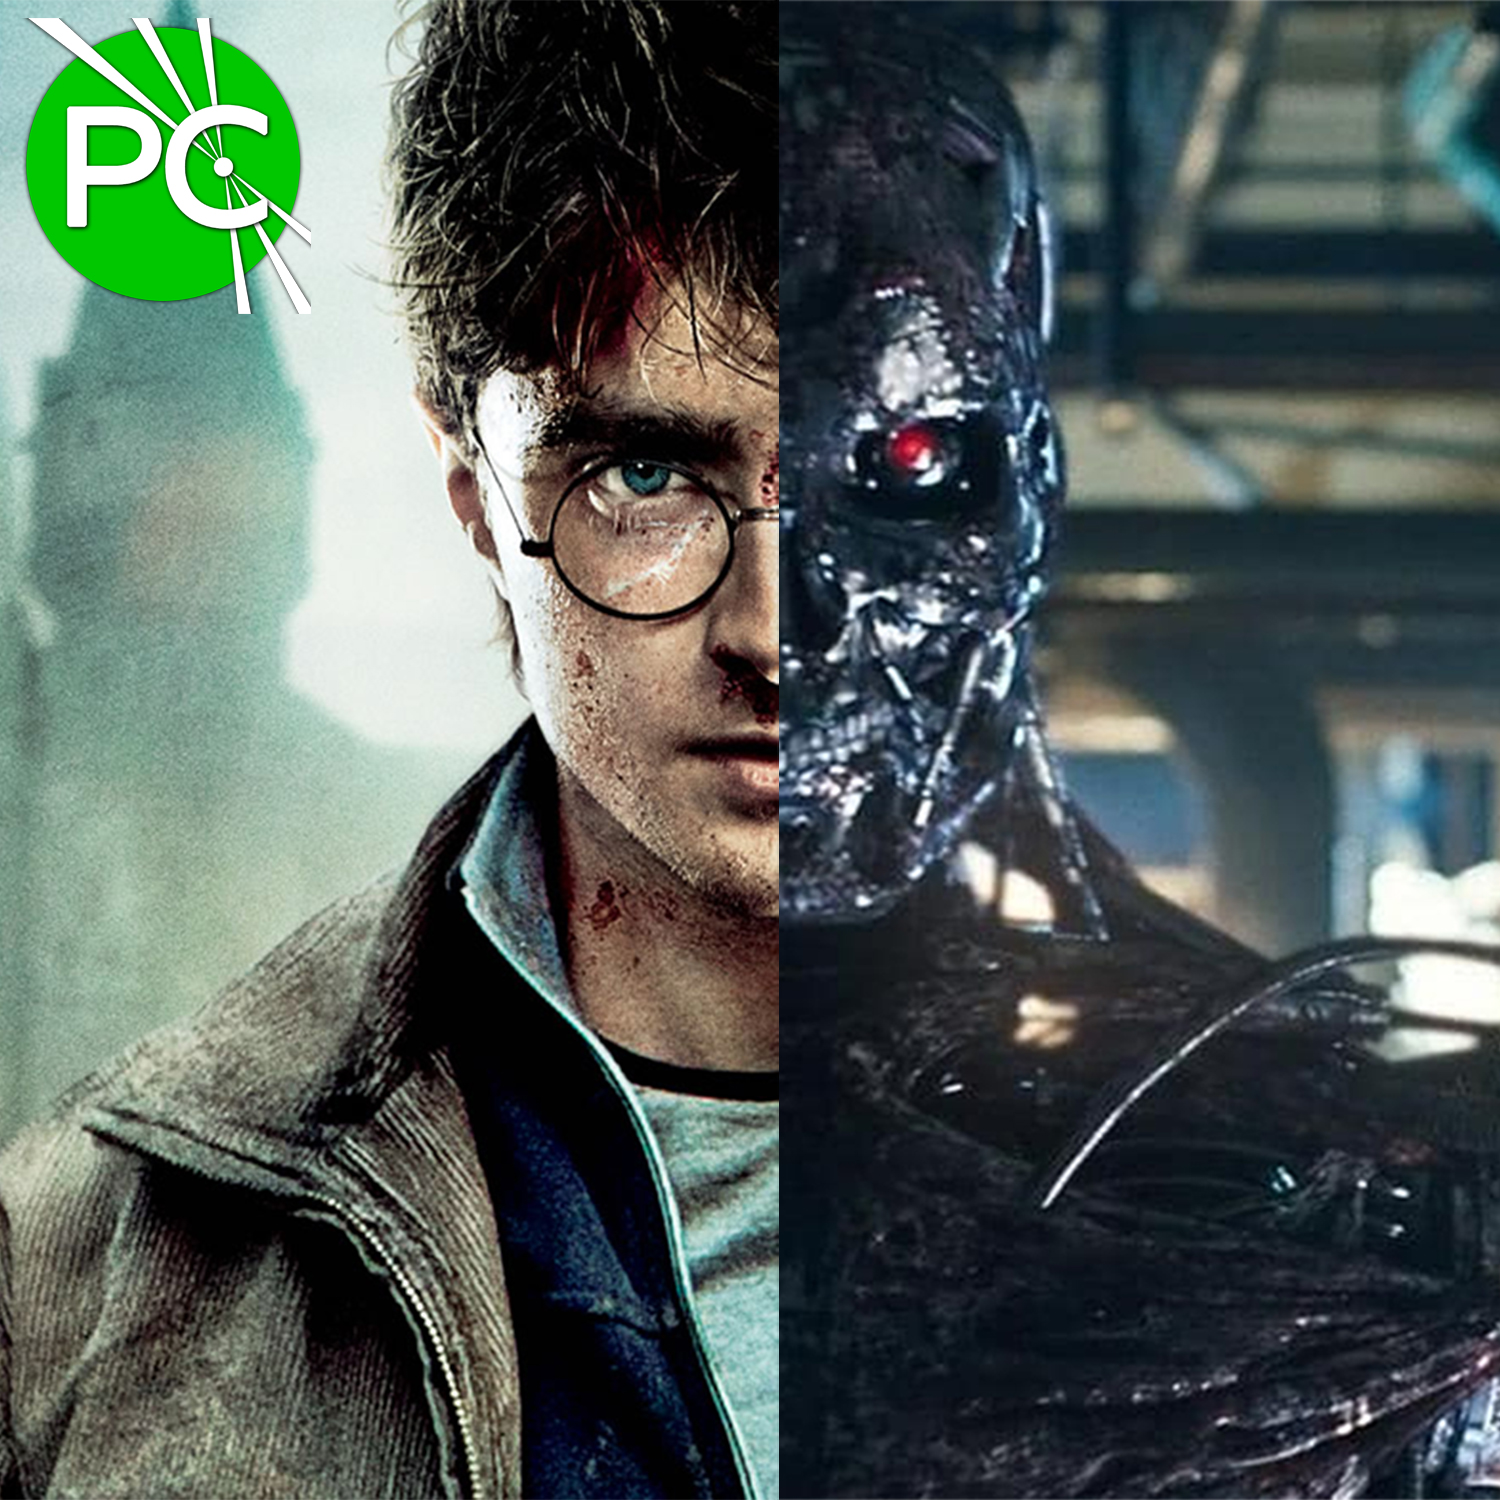 Episode 005 – Harry Potter Terminator Mashup 1 of 3